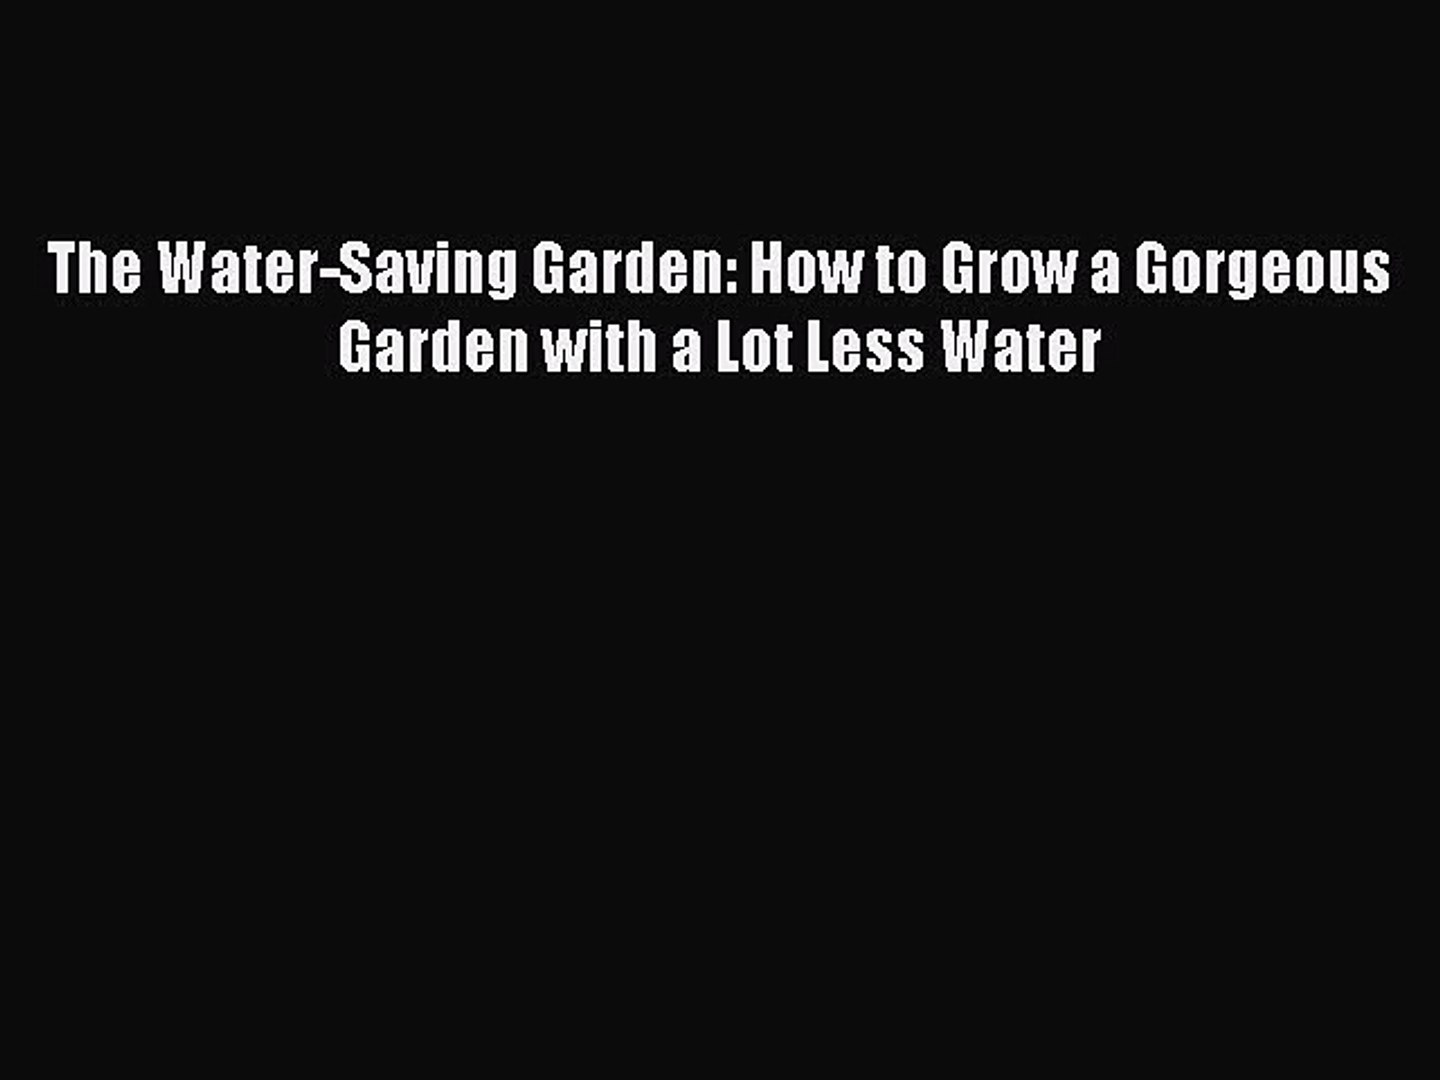 Download The Water-Saving Garden: How to Grow a Gorgeous Garden with a Lot Less Water Ebook